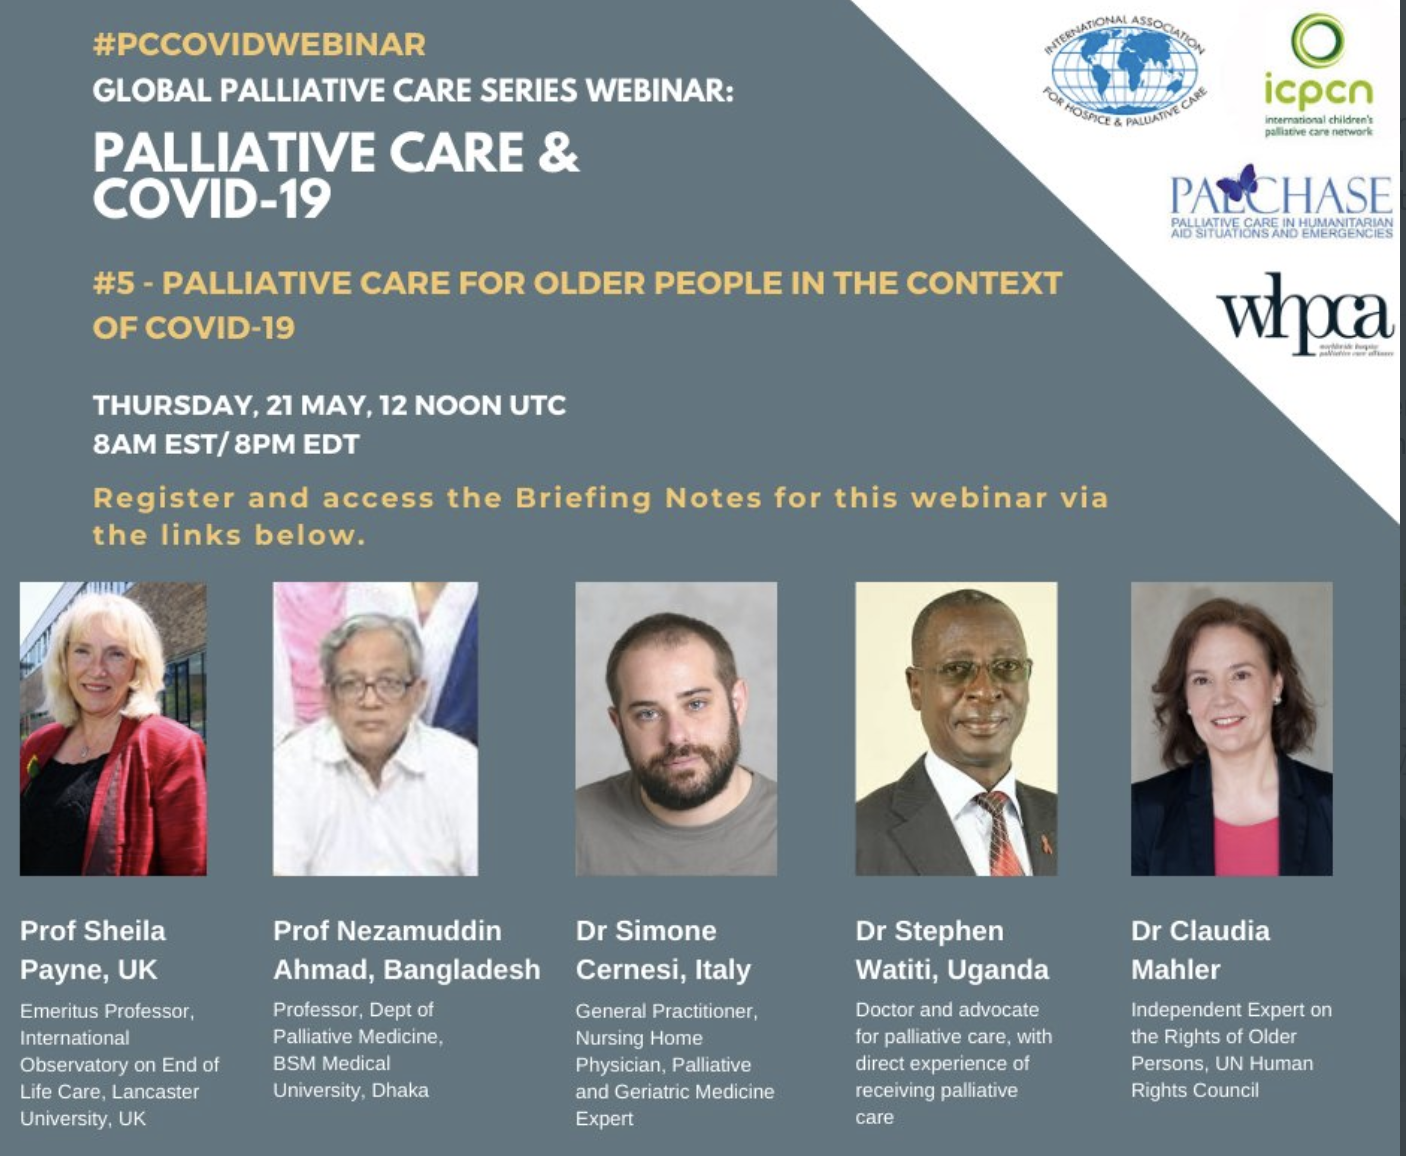 Global Palliative Care Series webinar: palliative care for older people in the context of Covid-19